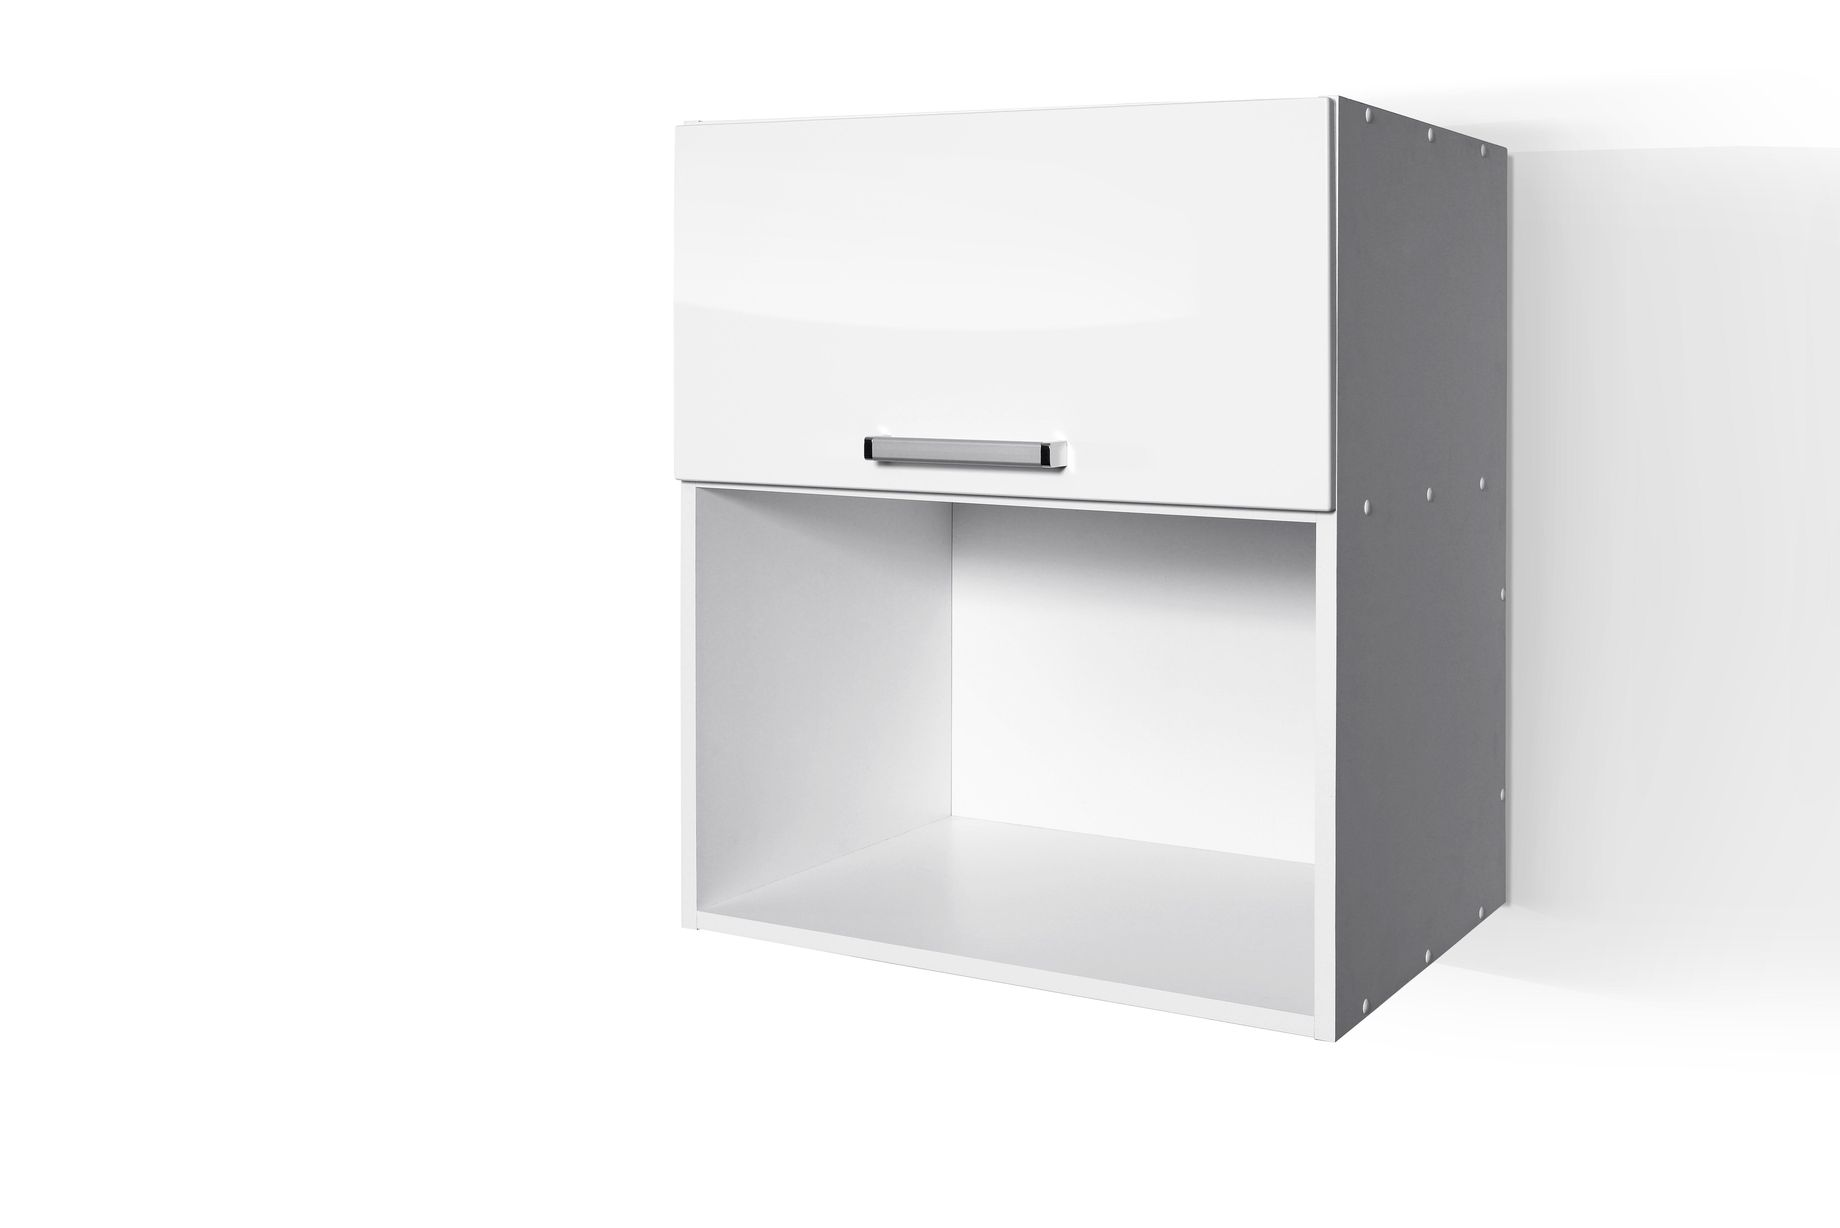 High Gloss White Wall microwave cabinet W601KMI for Kitchen